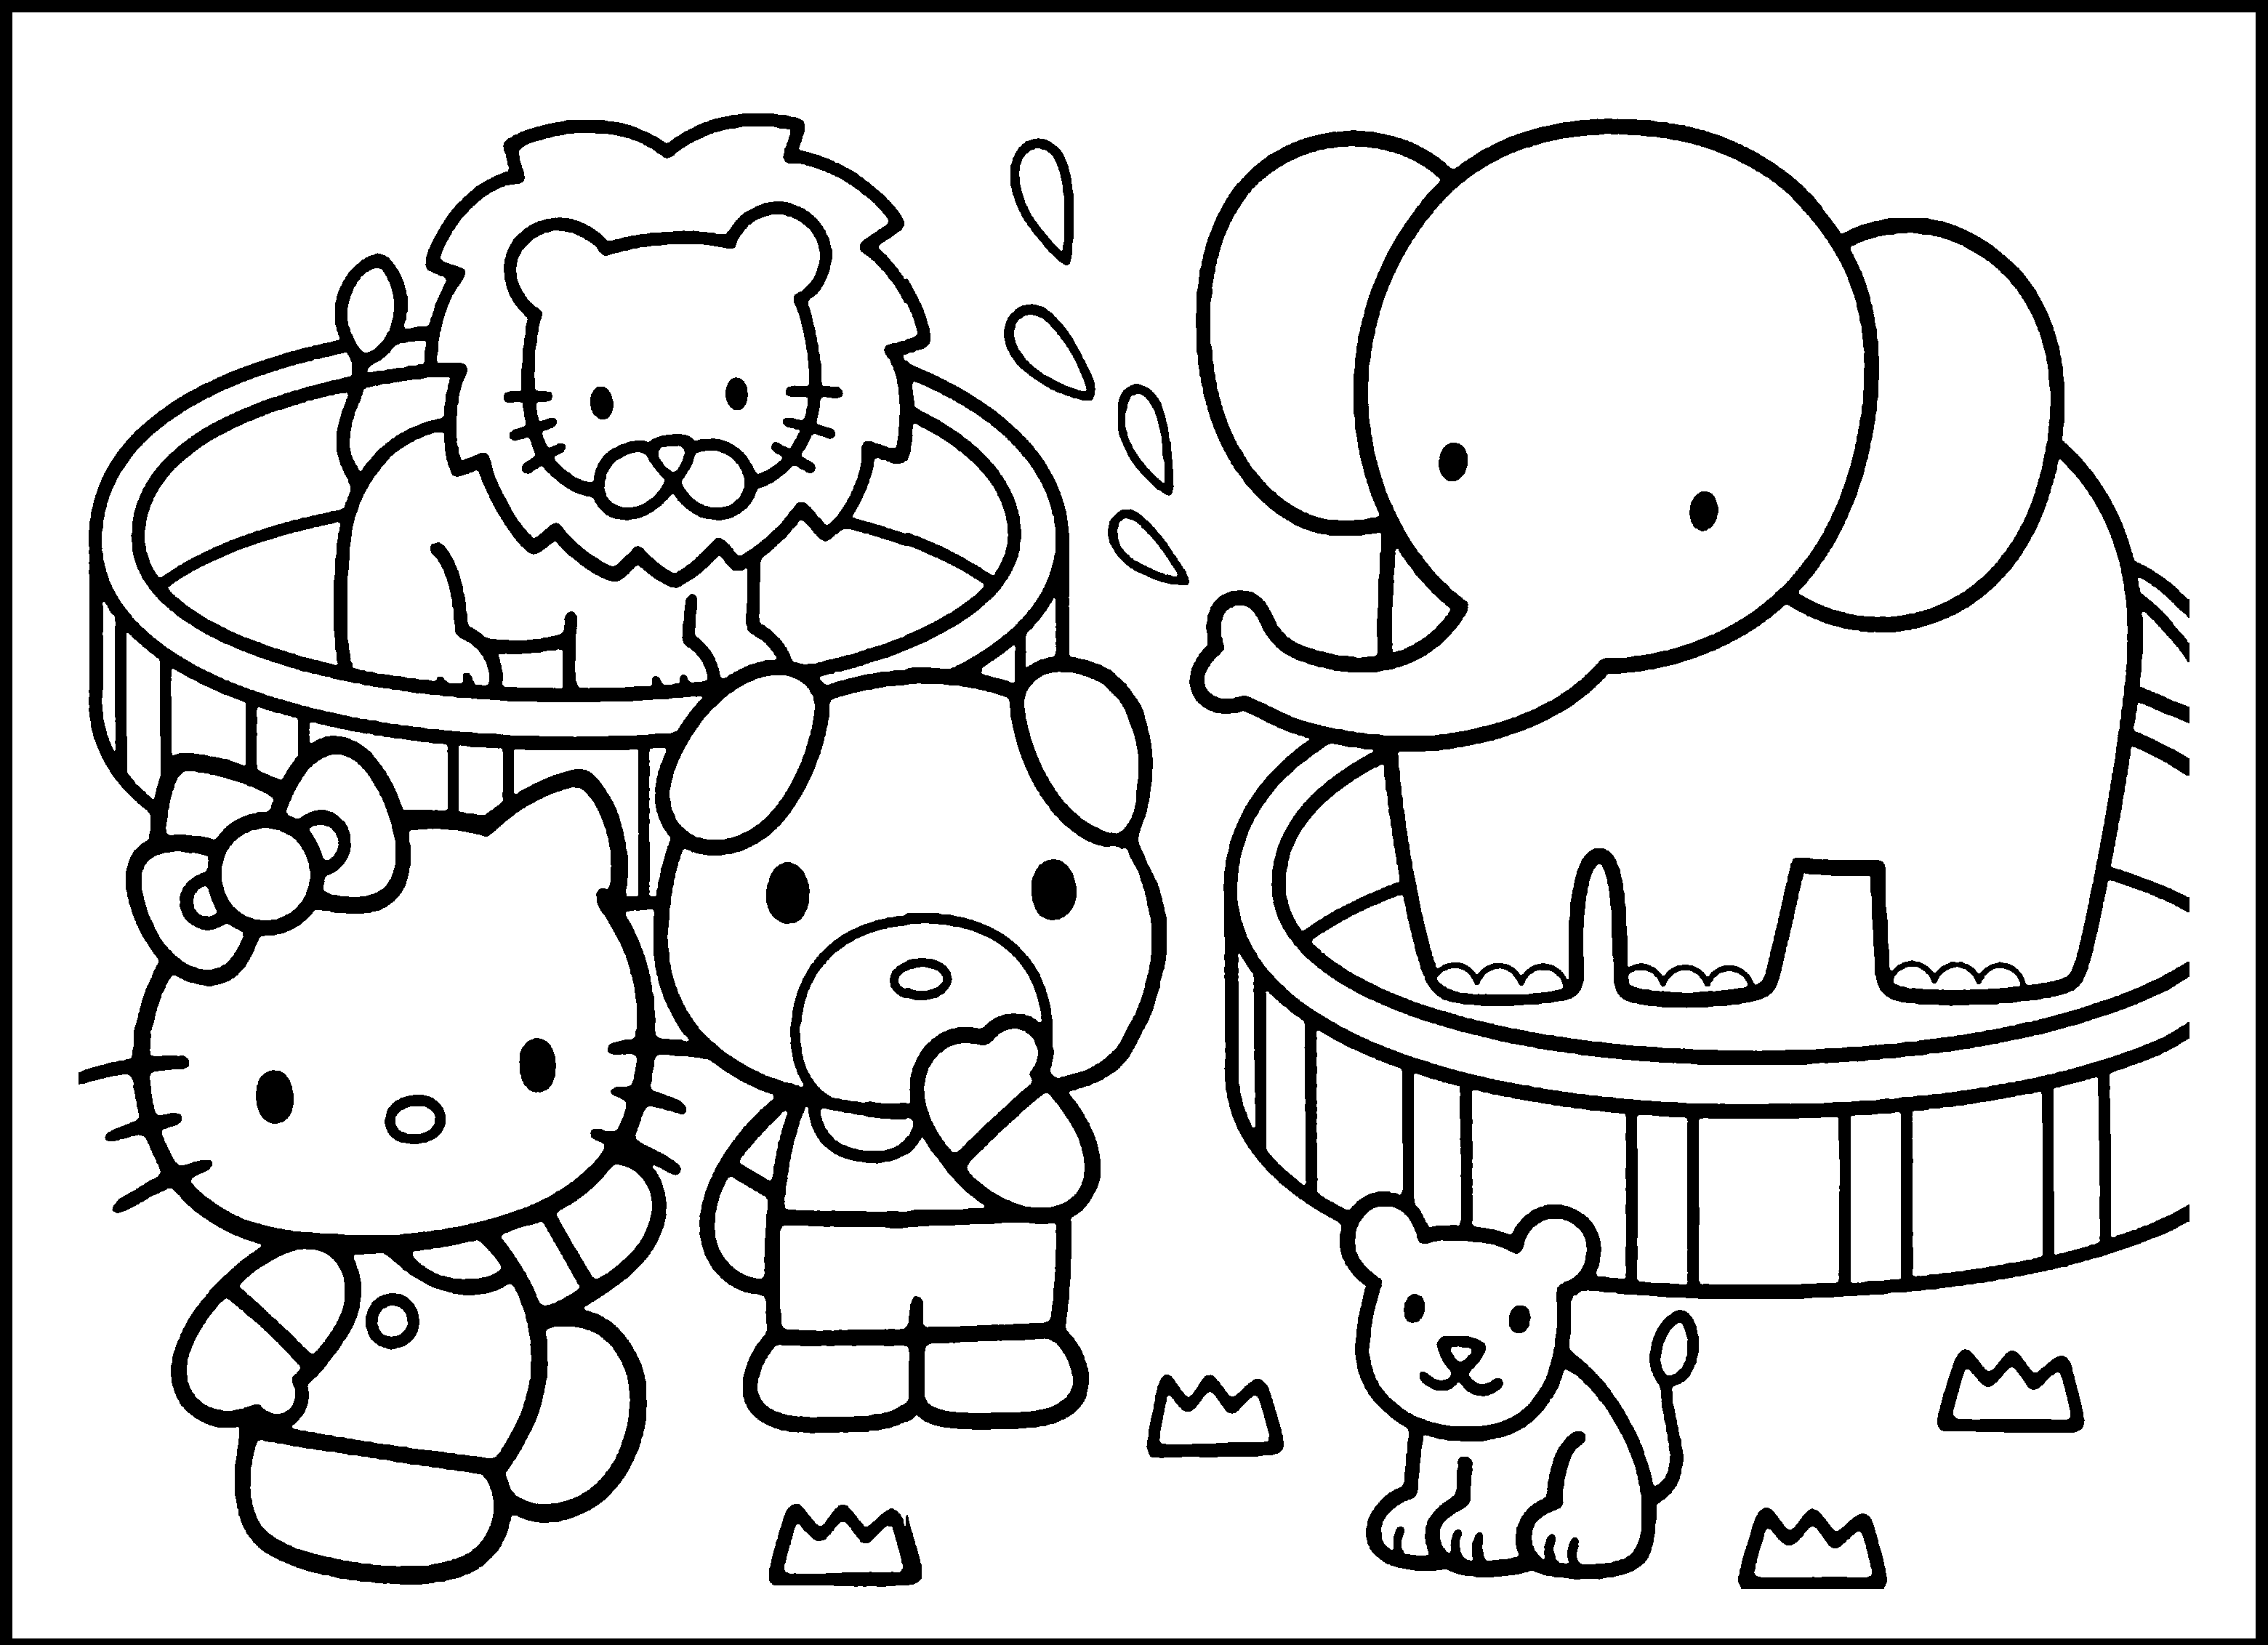 zoo animal coloring coloring sheet zoo animals in 2020 with images zoo animal coloring zoo